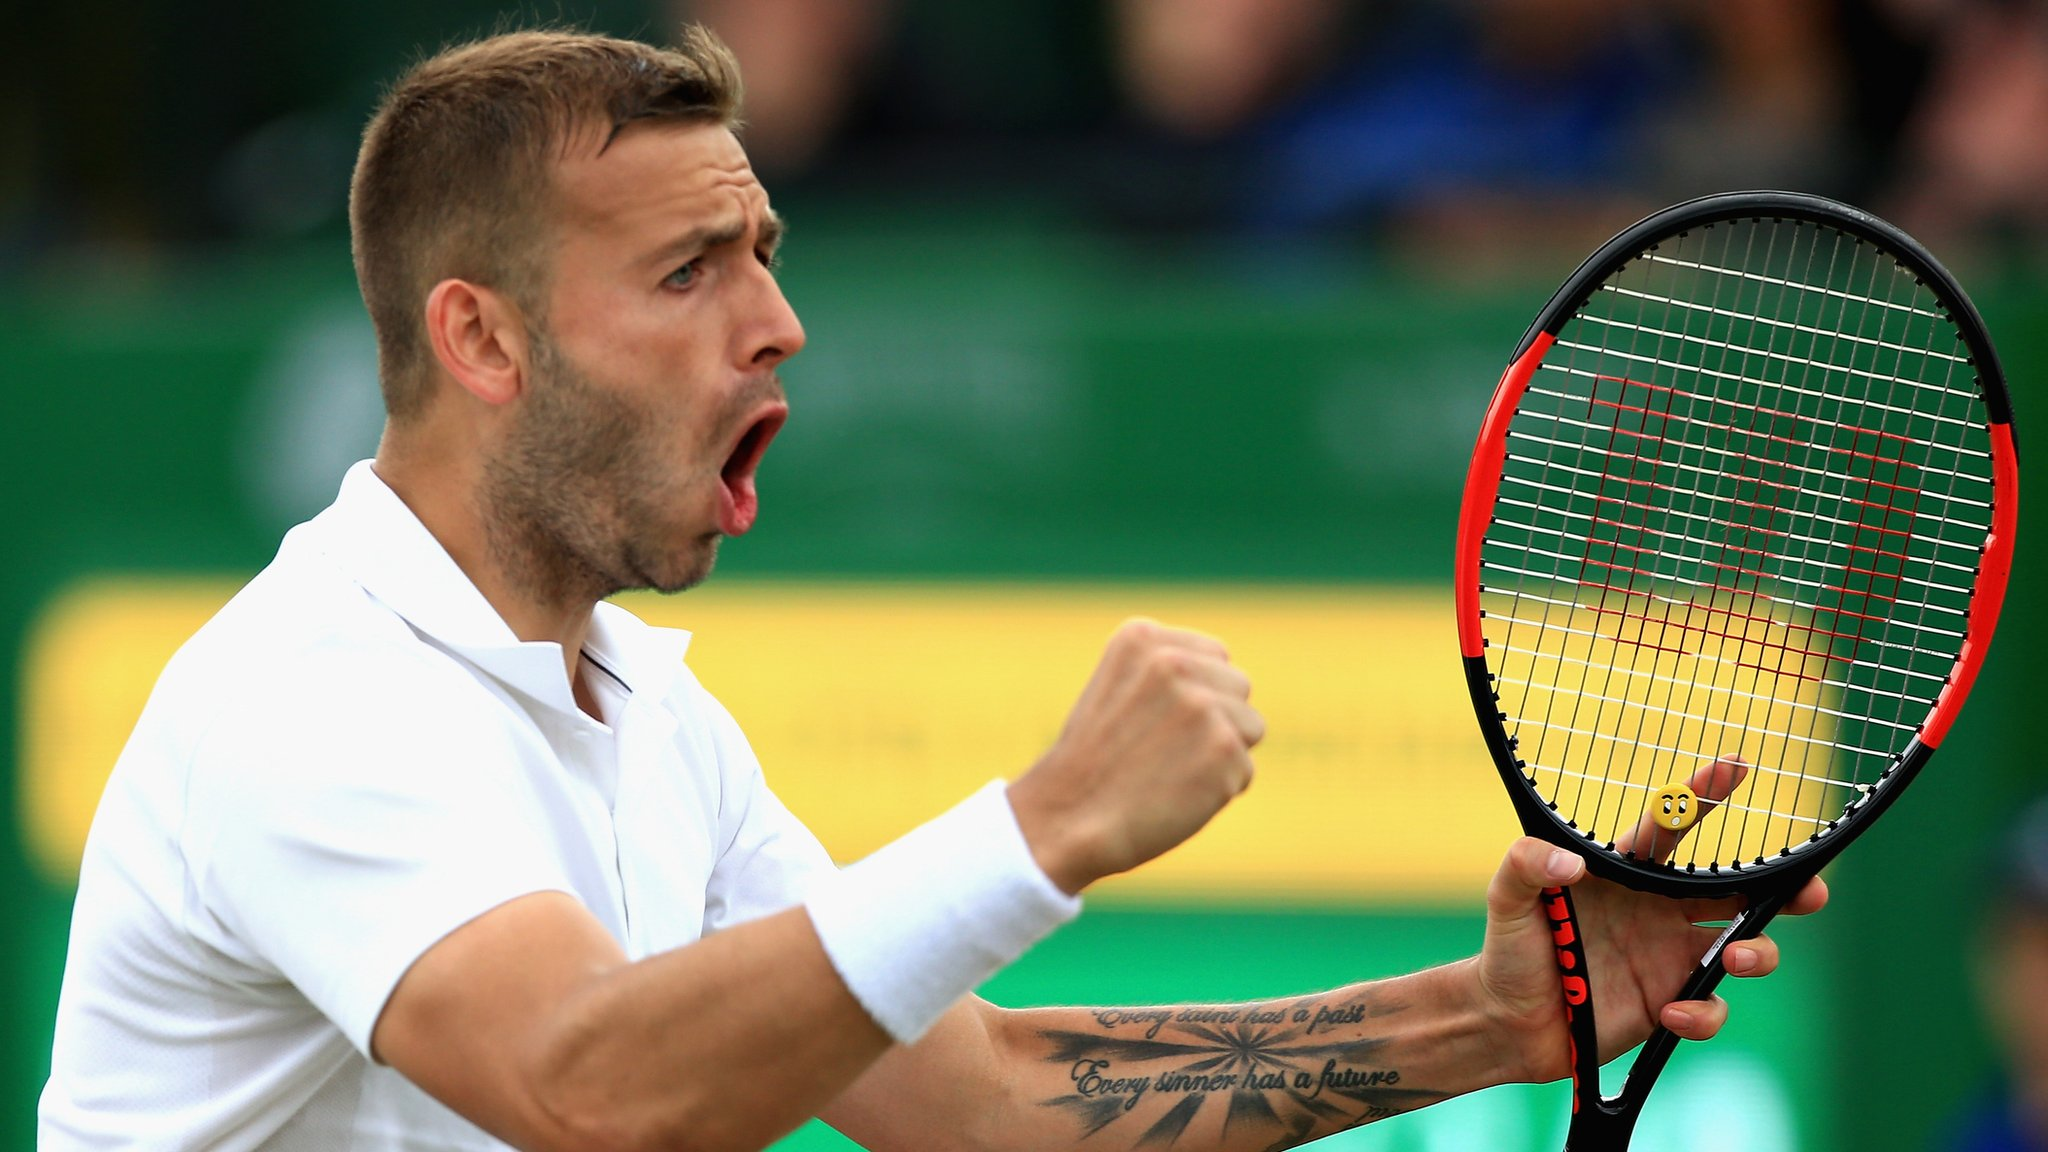 Evans beats Granollers to reach Nottingham final